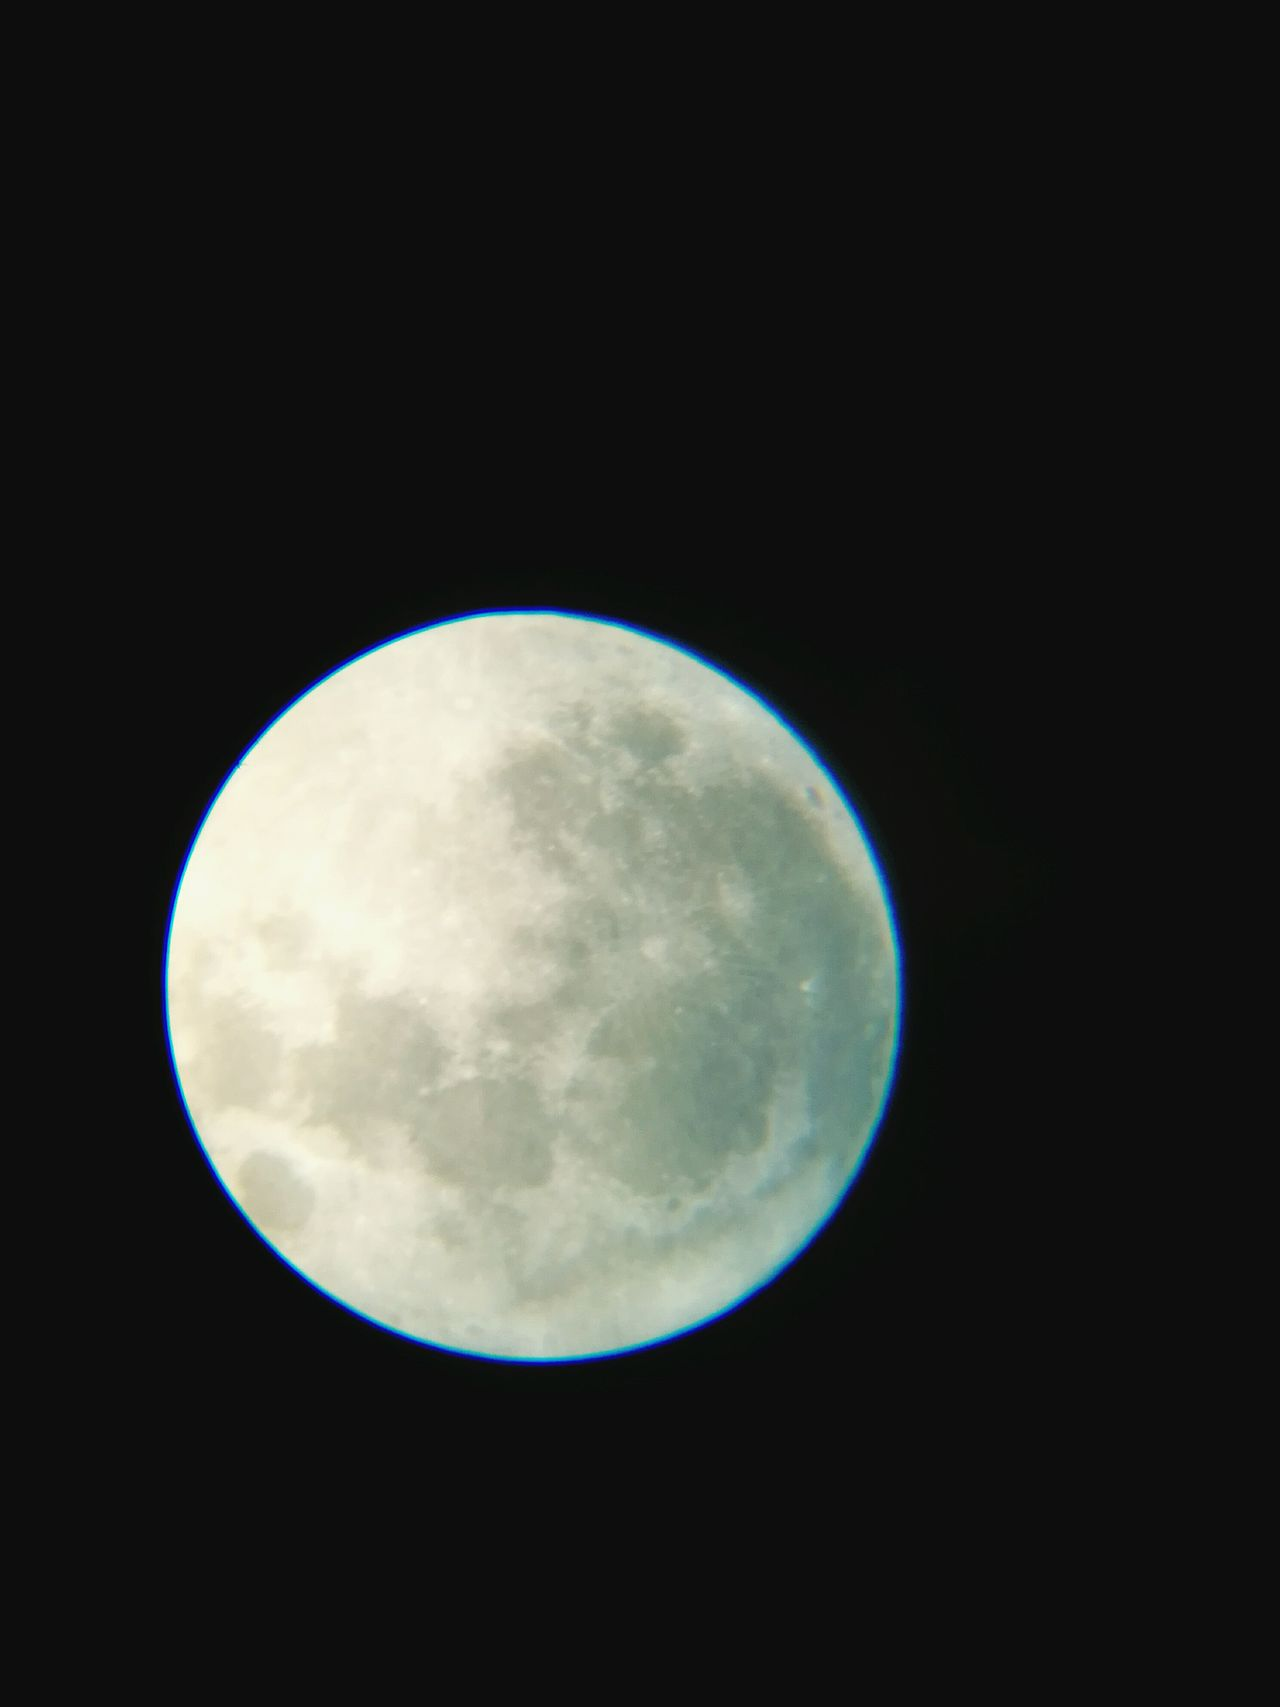 Moon Nature Astronomy No People Night Tranquility Moon Surface Beauty In Nature Outdoors Black Background Space Sky Star - Space Supermoon 2016 Natural Condition Tranquility Supermoon Nature Landscape Beauty In Nature Moon Dinner Time Cloud - Sky British Airways Flybe